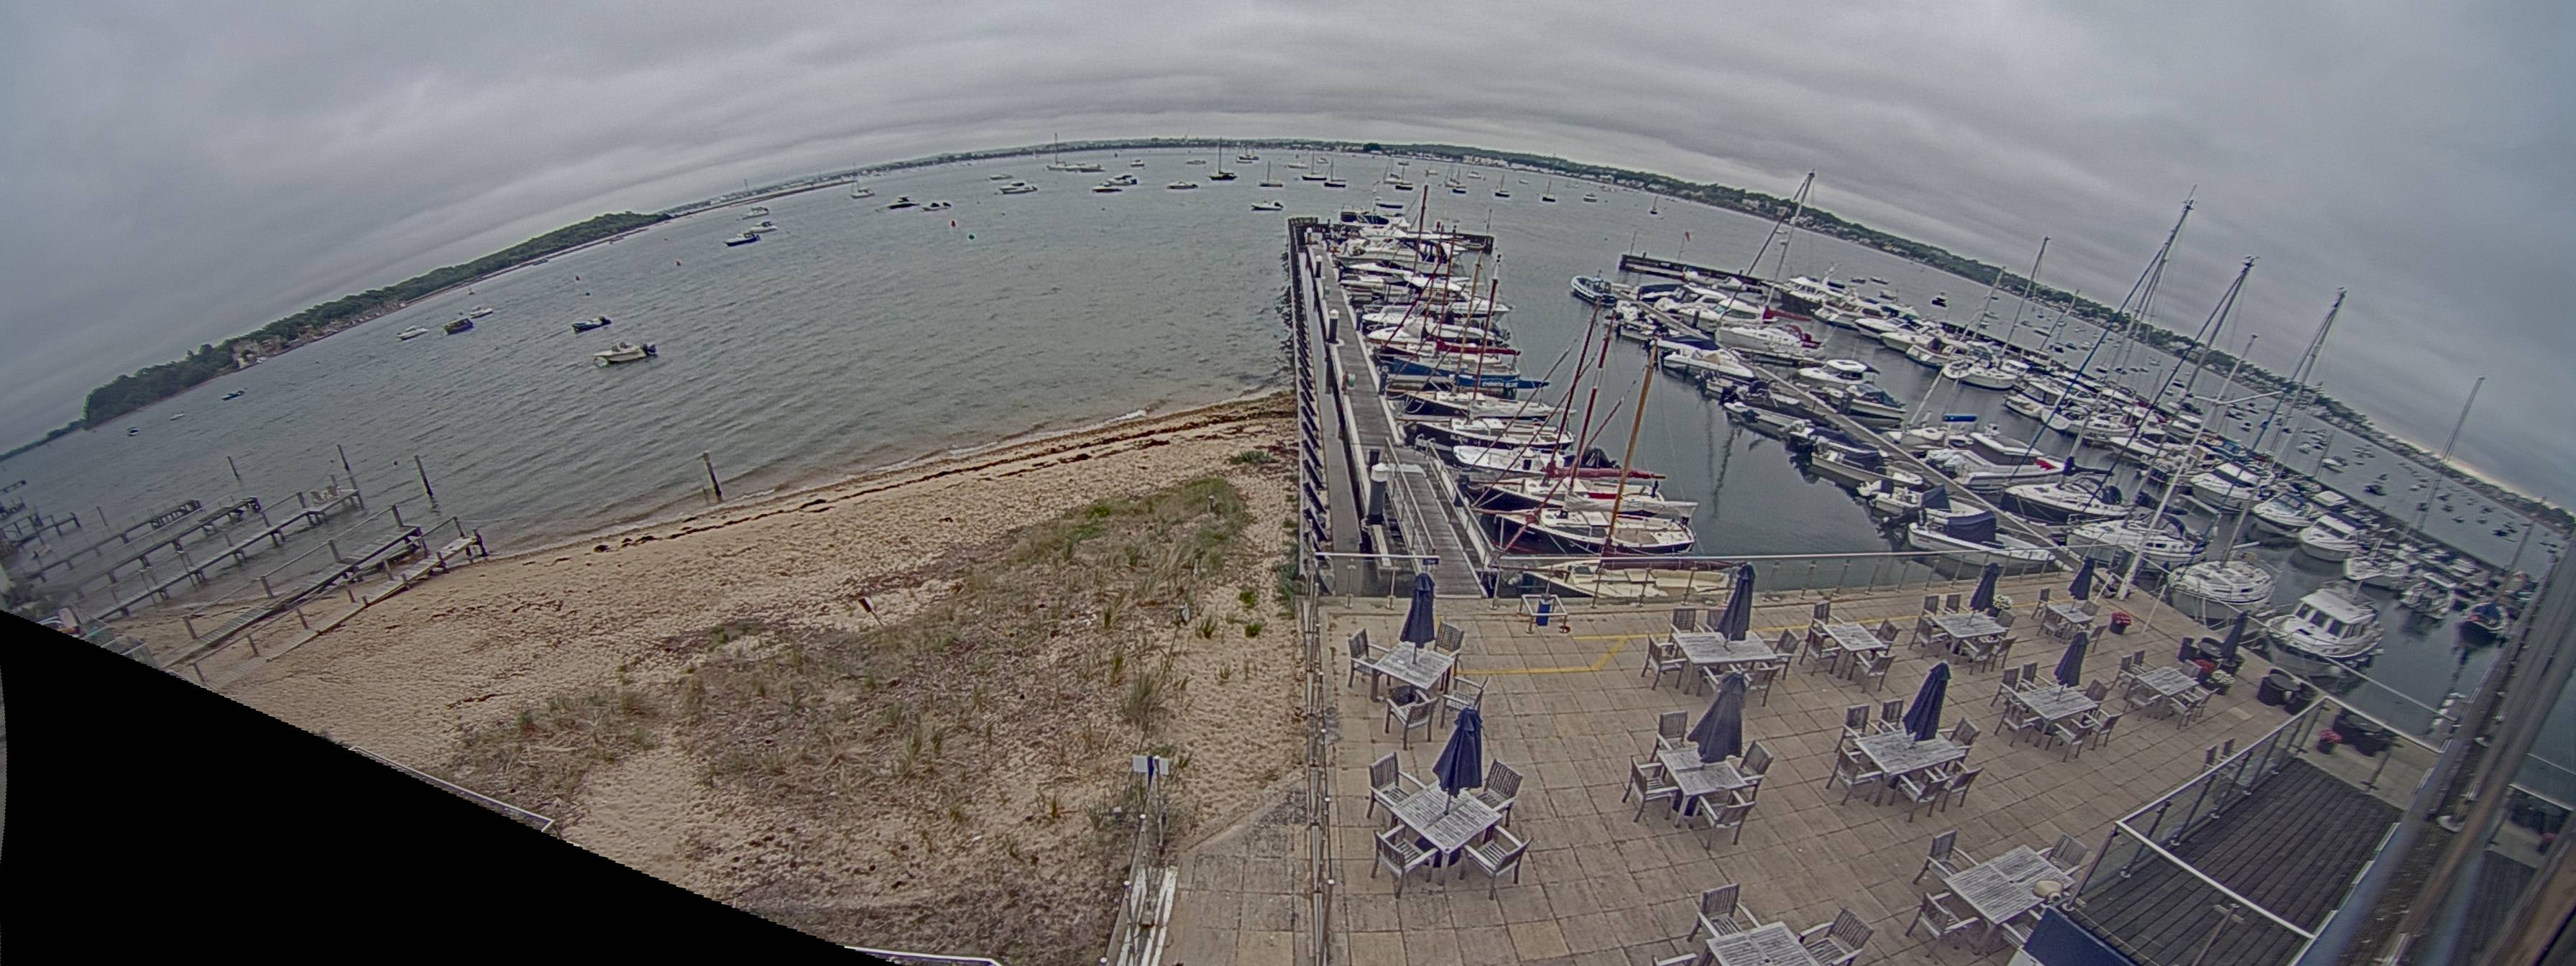 Royal Motor Yacht Club Webcam